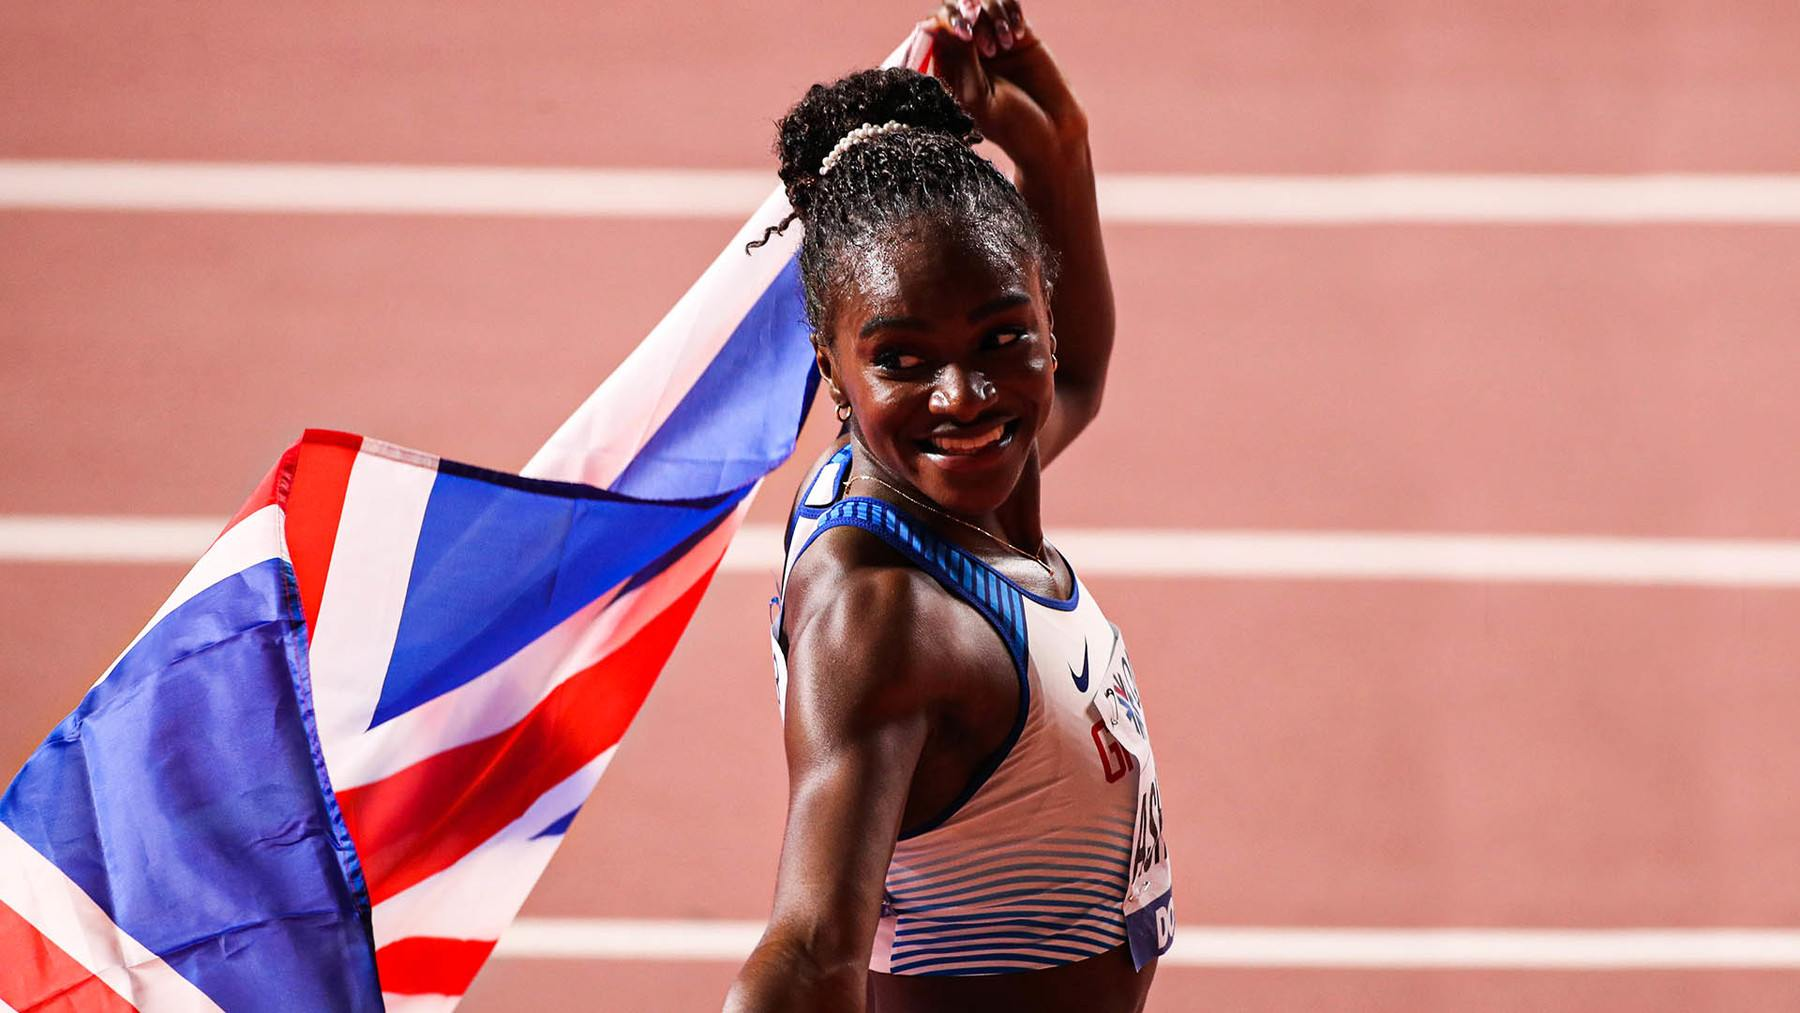 Dina Asher-Smith with a GB flag at Doha 2019